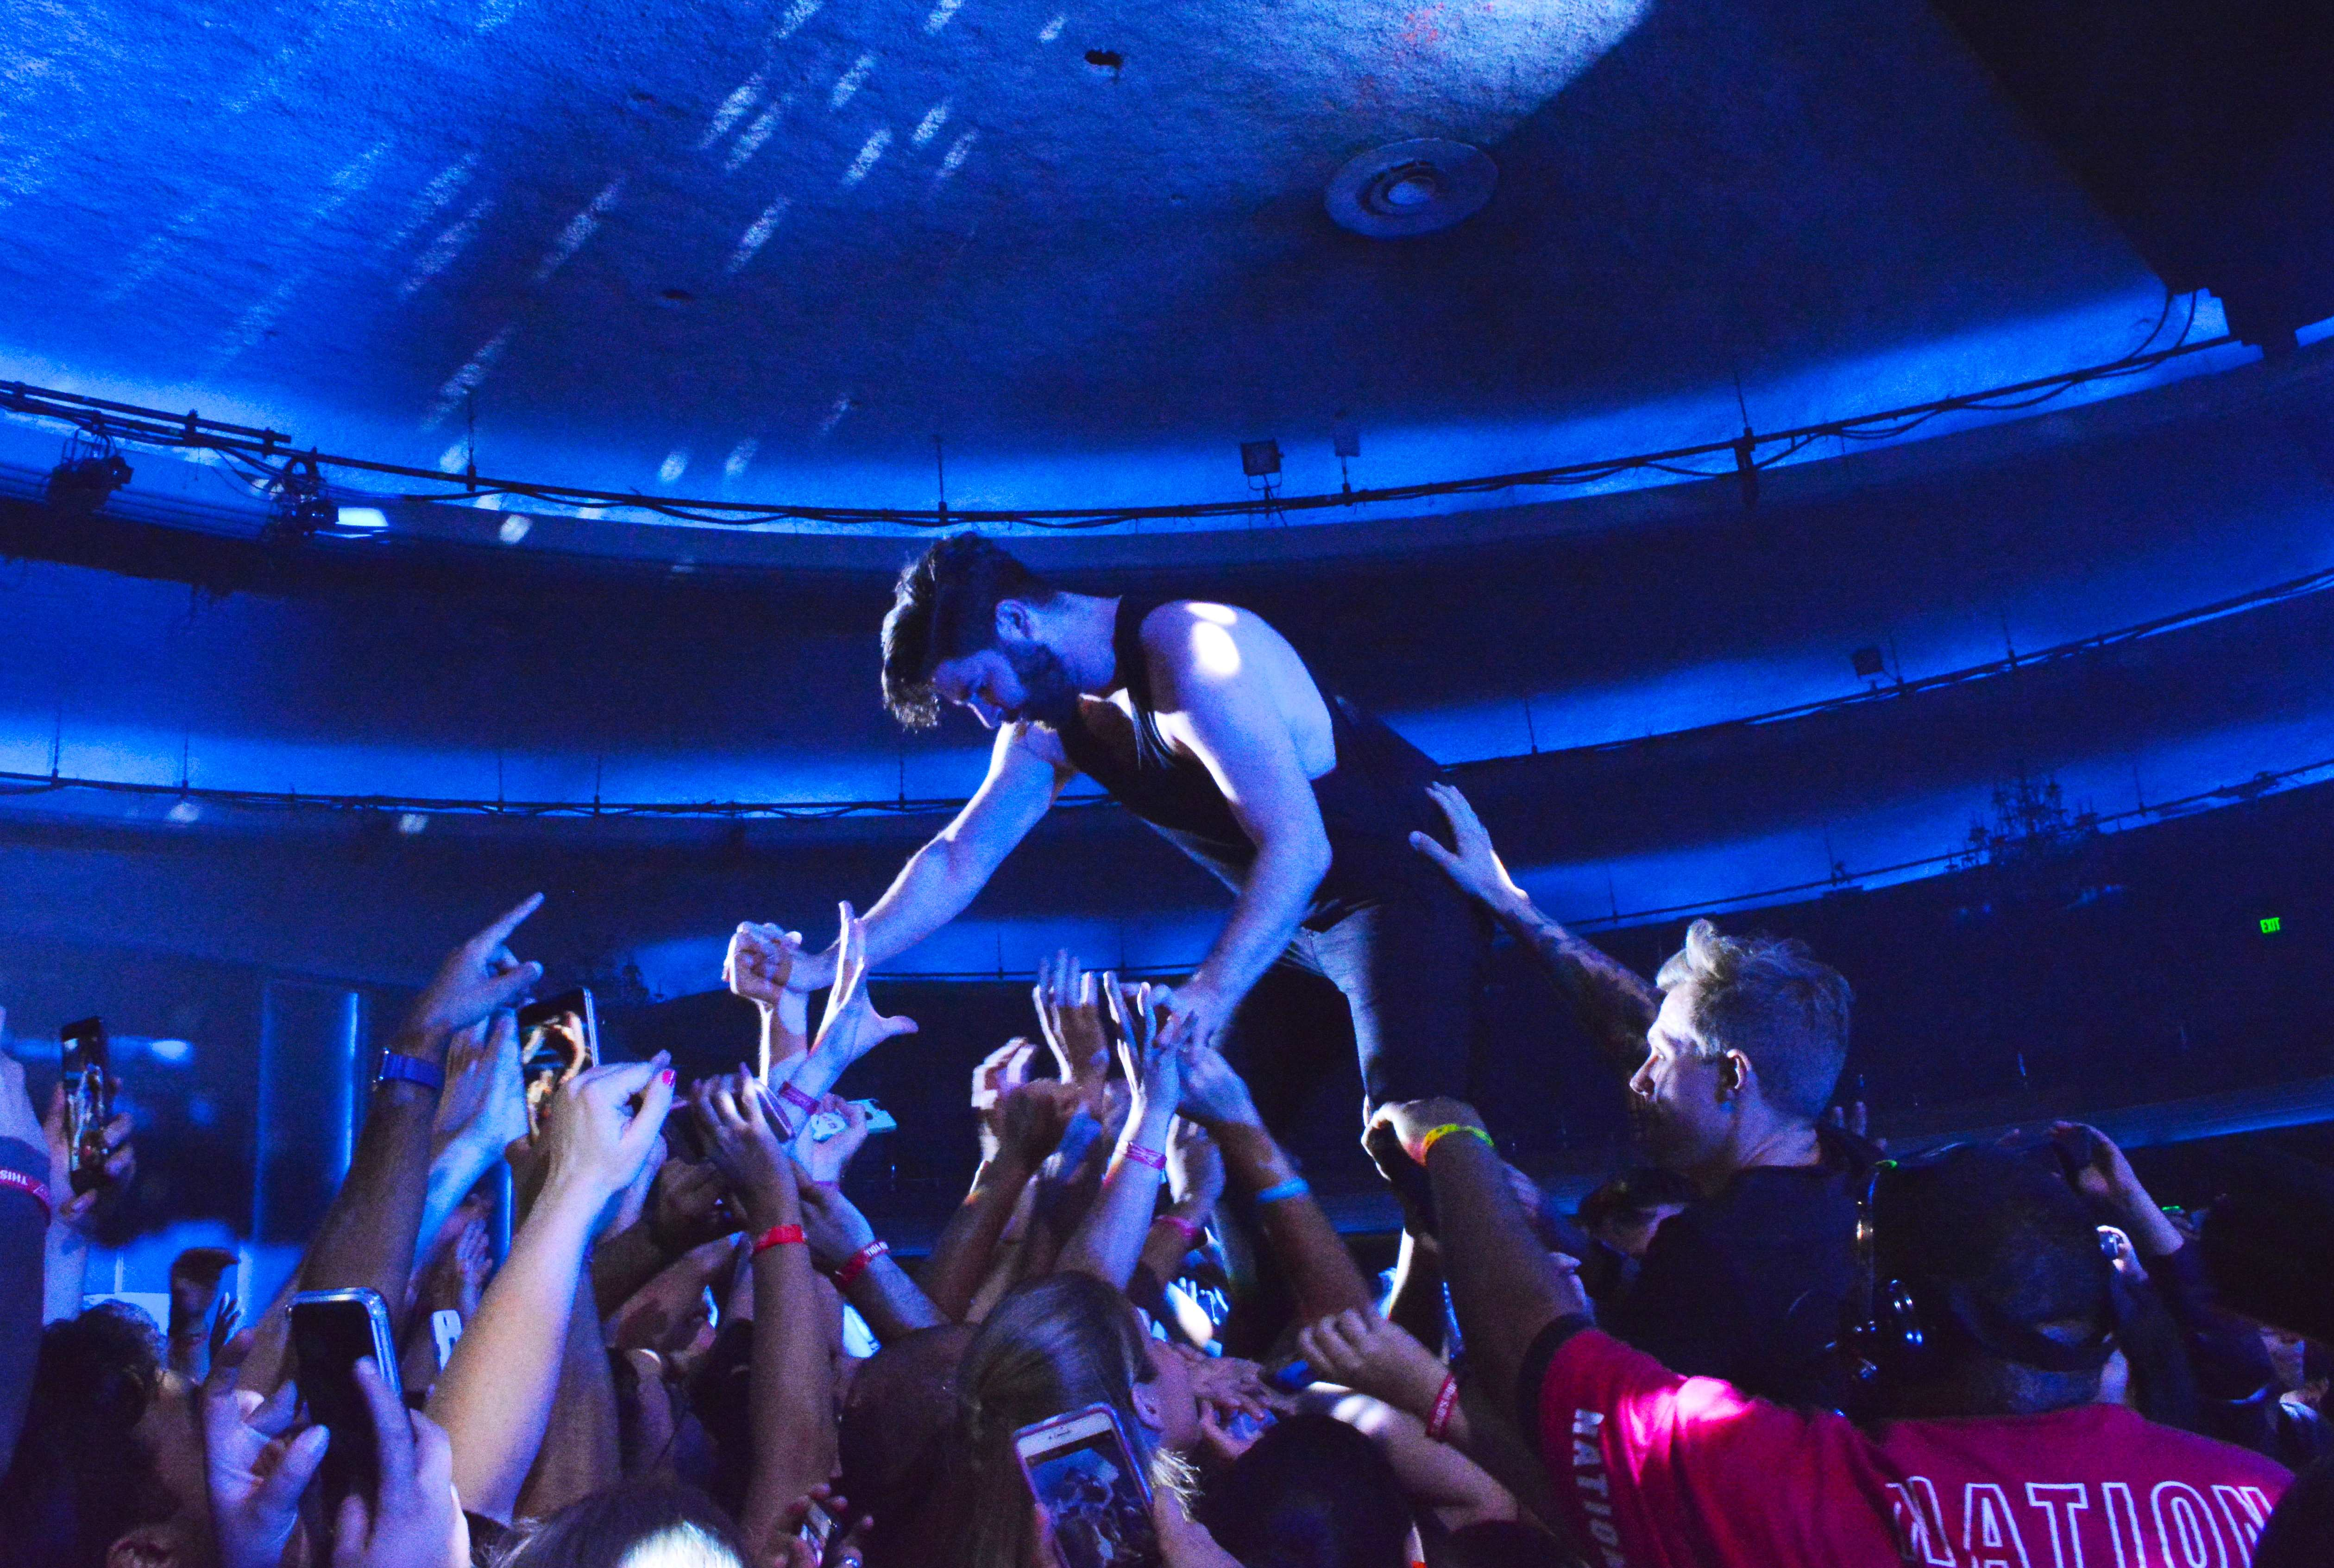 Amanda Verdadero | Daily Trojan Friend or foal · Alternative band Foals performed at the Hollywood Palladium on Tuesday evening. The band released its fourth studio album, What Went Down, in 2015. Lead vocalist Yannis Philippakis (above) engaged with fans by crowd surfing through the audience.